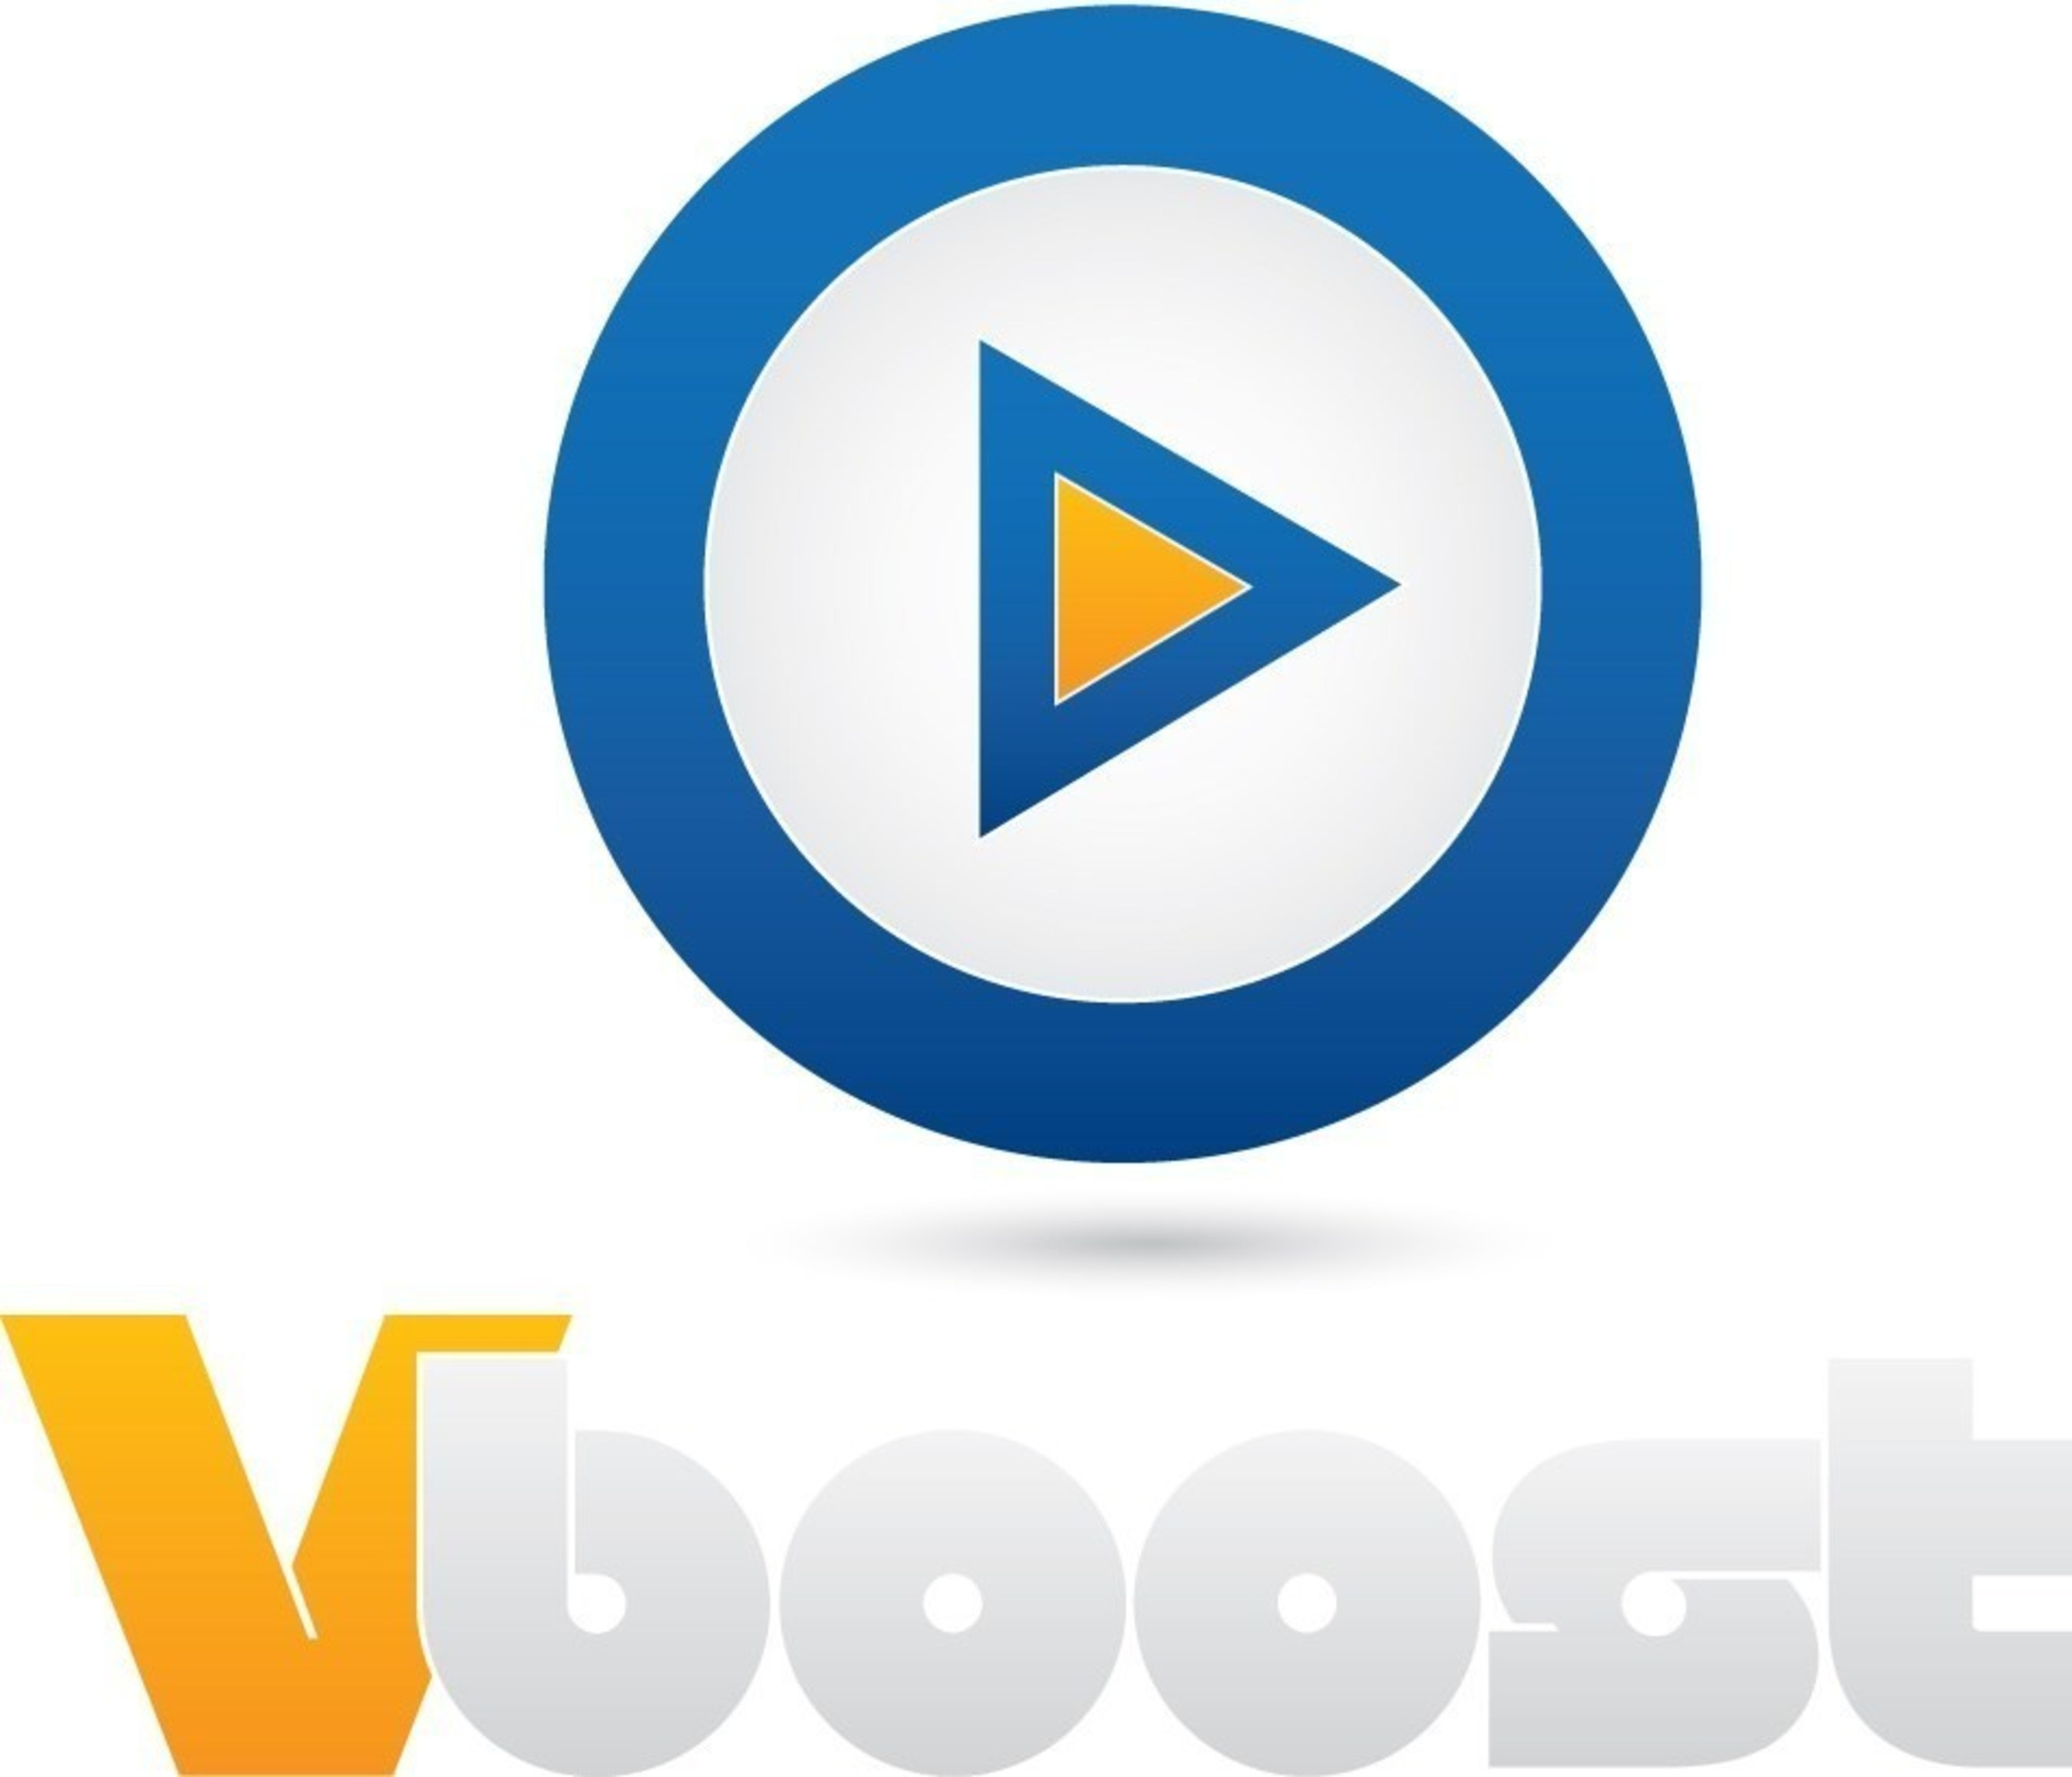 Next Generation Vboost Helps Auto Dealers Win Online Marketing Battle with Unprecedented Social Media Interactions, Views and Customer Share Rates